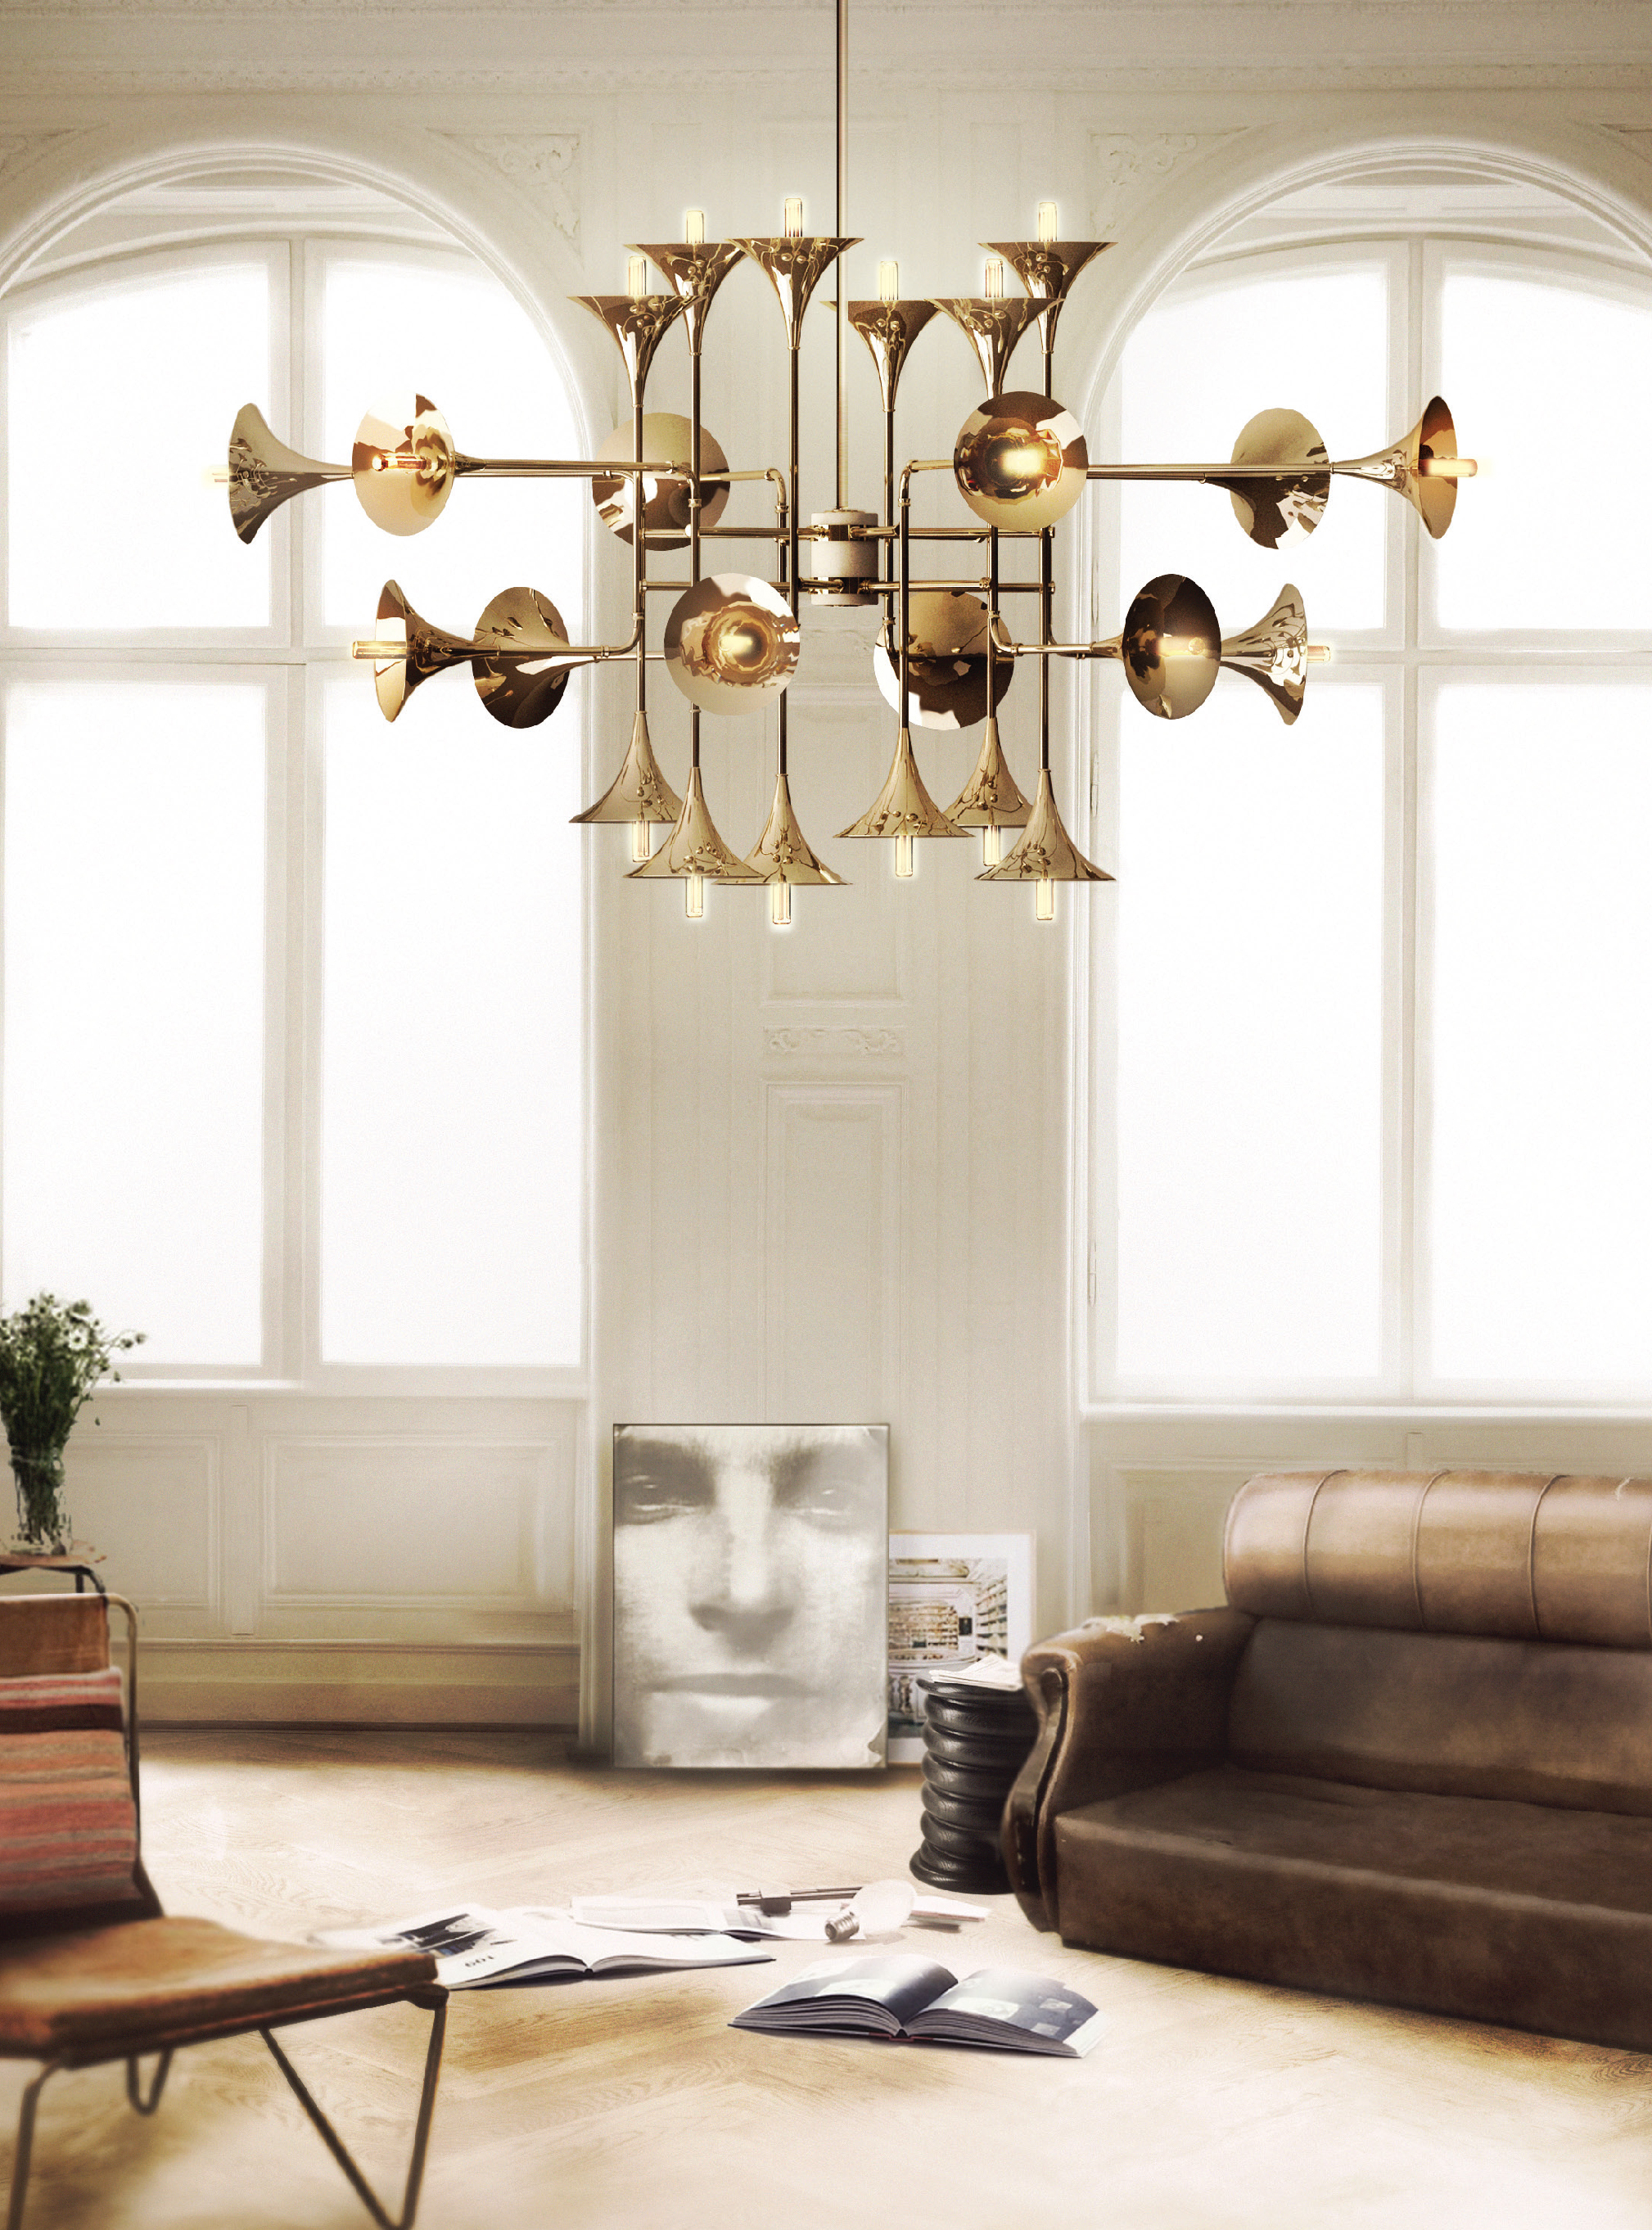 Bright Ideas for Light Fixtures in Your Living Room Decor (1) living room decor Bright Ideas for Light Fixtures in Your Living Room Decor Bright Ideas for Light Fixtures in Your Living Room Decor 8